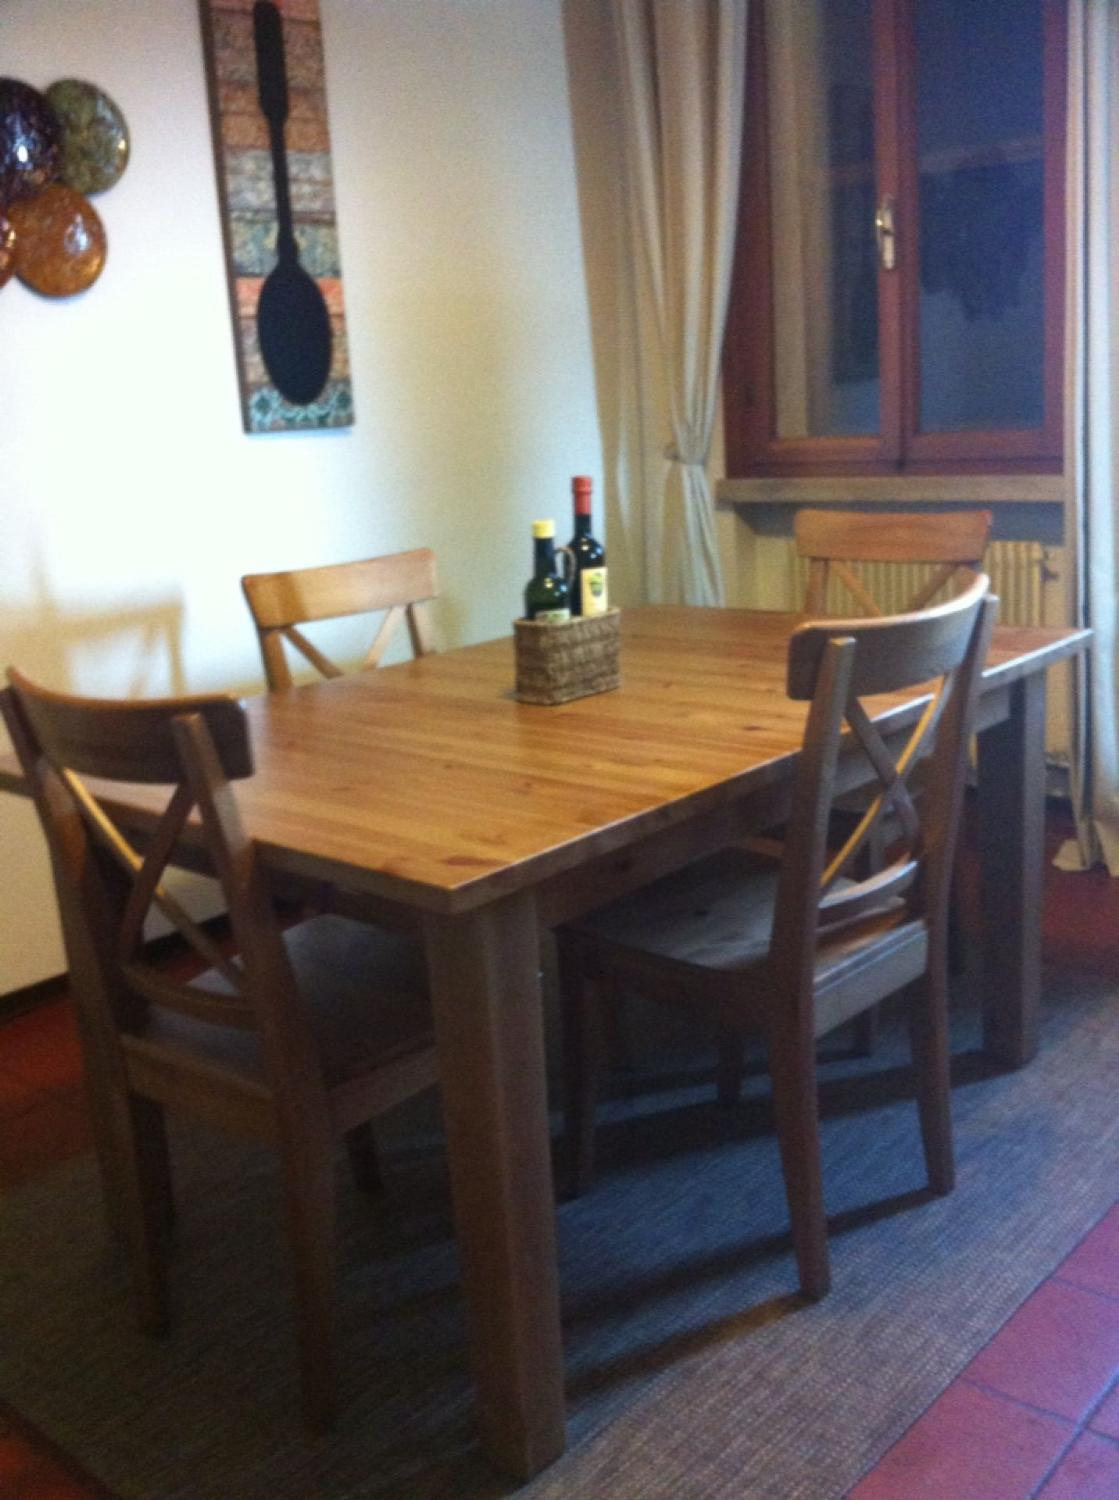 Stornas Ikea Extendable Dining Table And 4 Ingolf Ikea Chairs